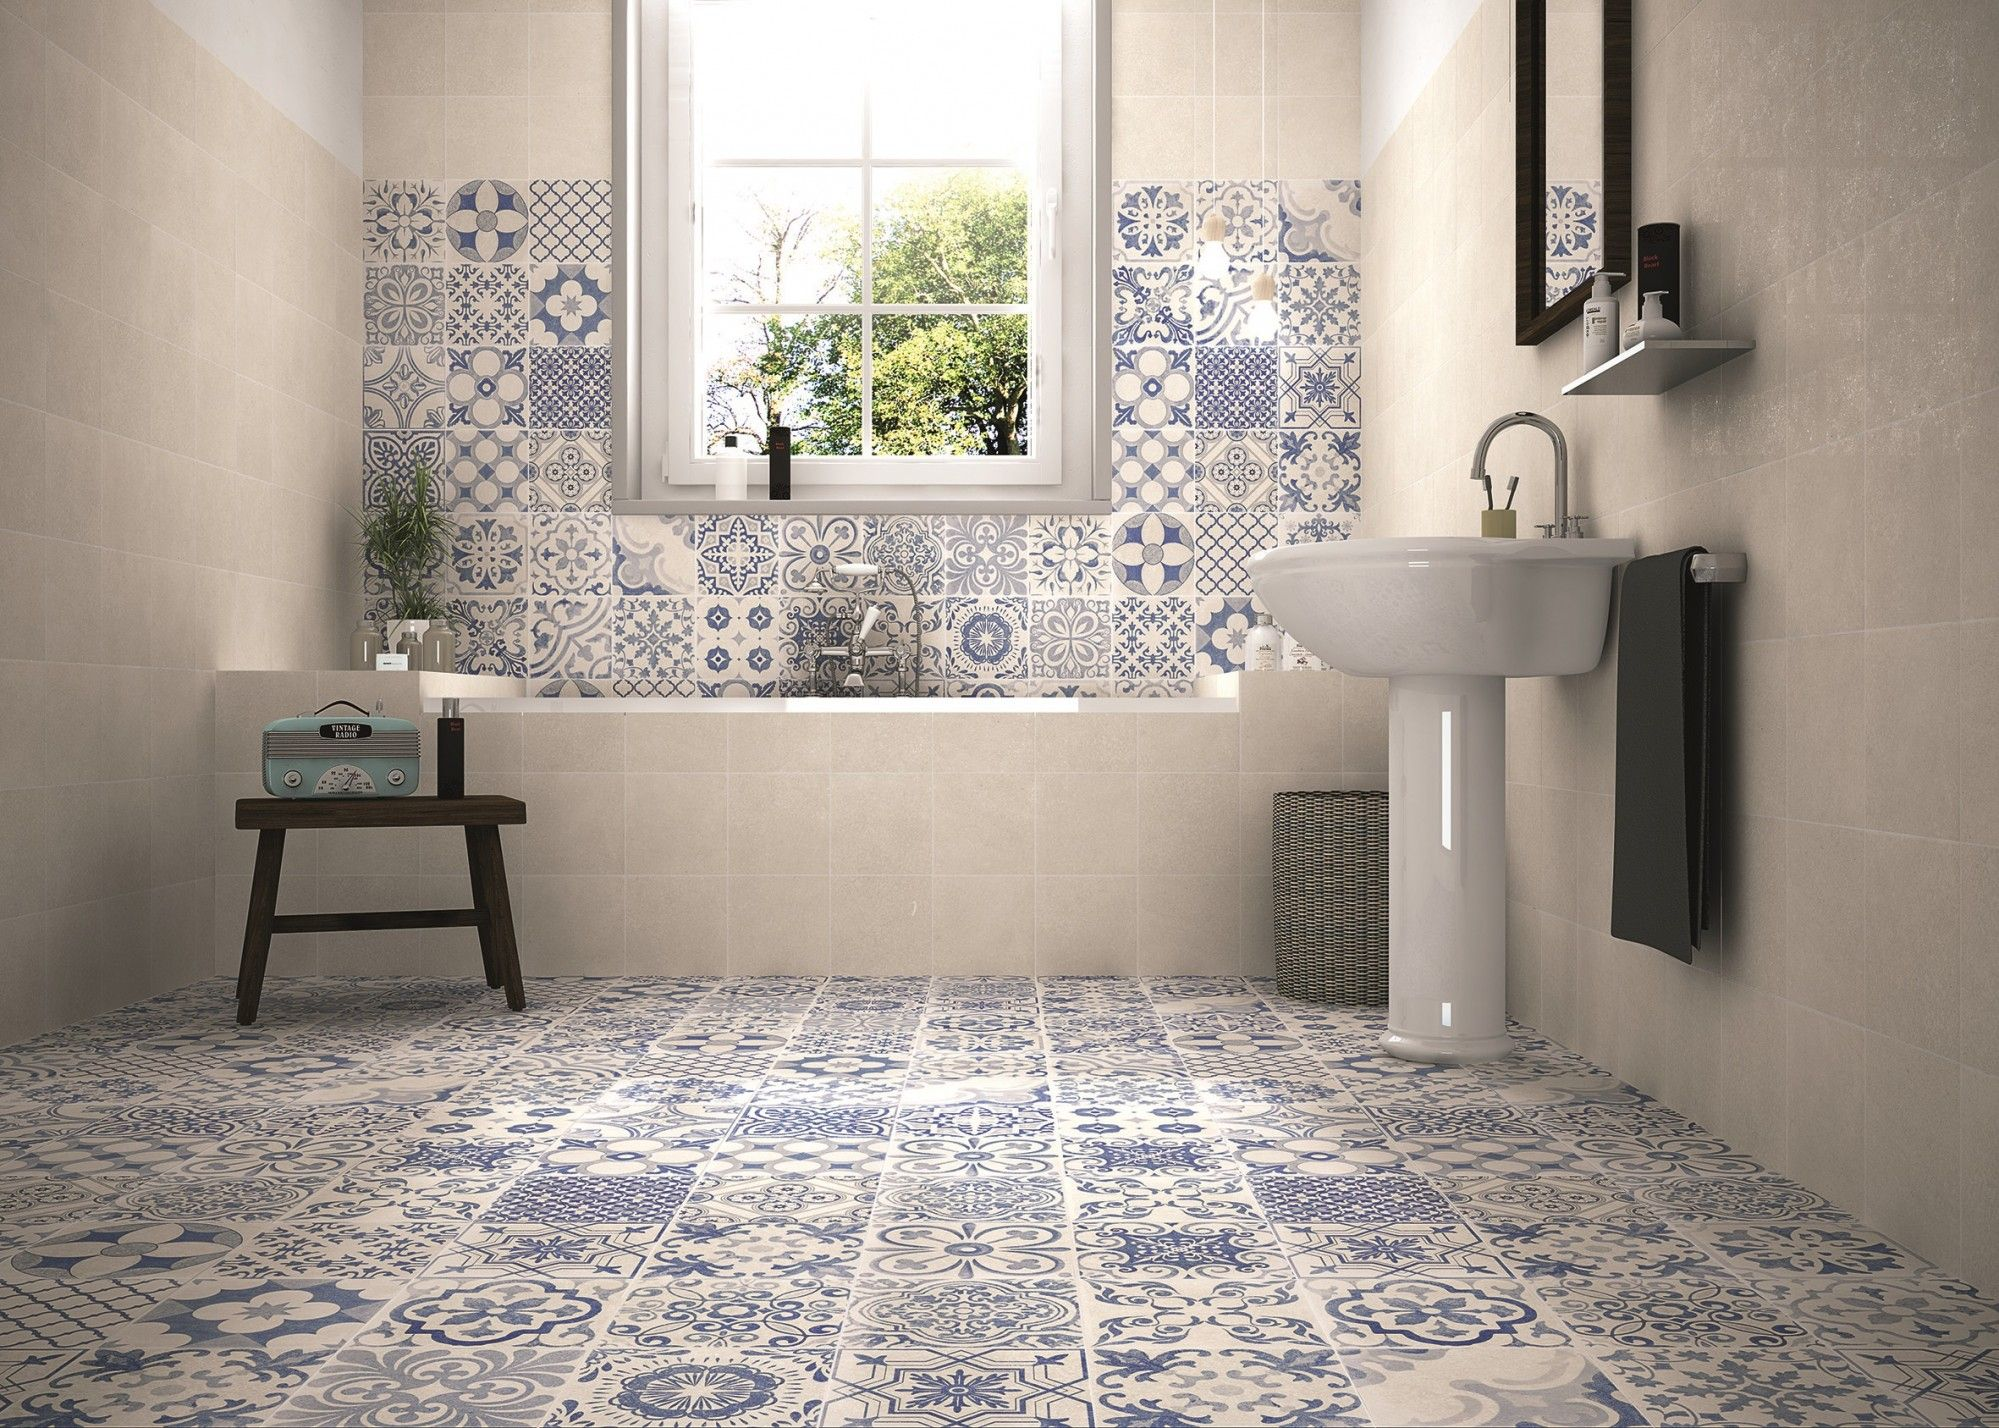 Skyros Delft Blue Wall and Floor Tile | Pinterest | Blue walls ...